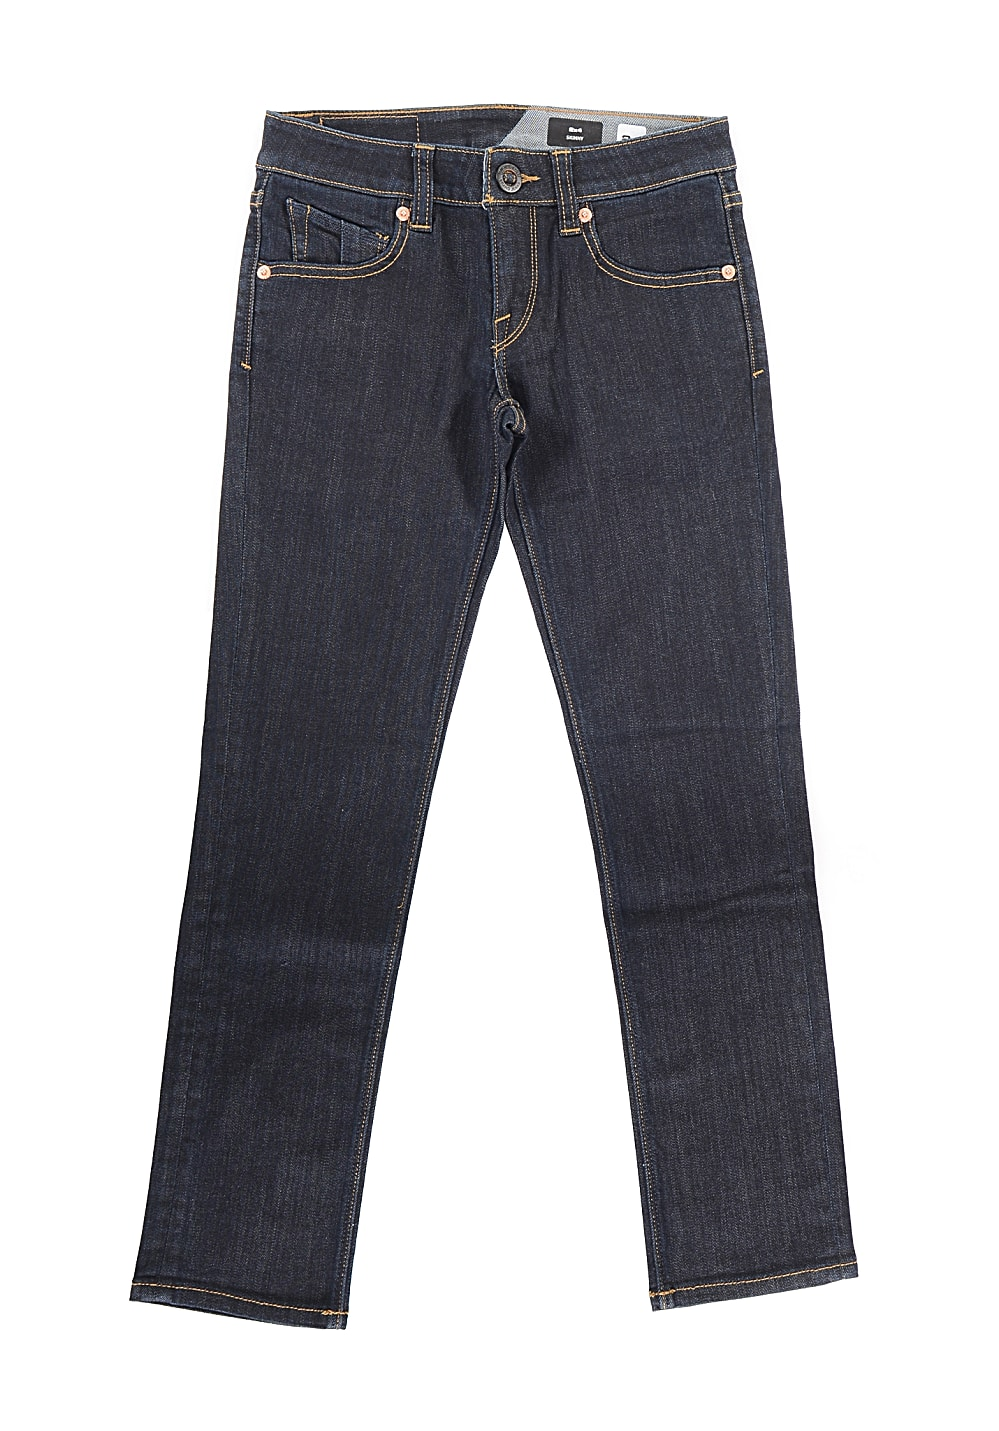 Boyshosen - Volcom 2X4 By Jeans Blau - Onlineshop Planet Sports